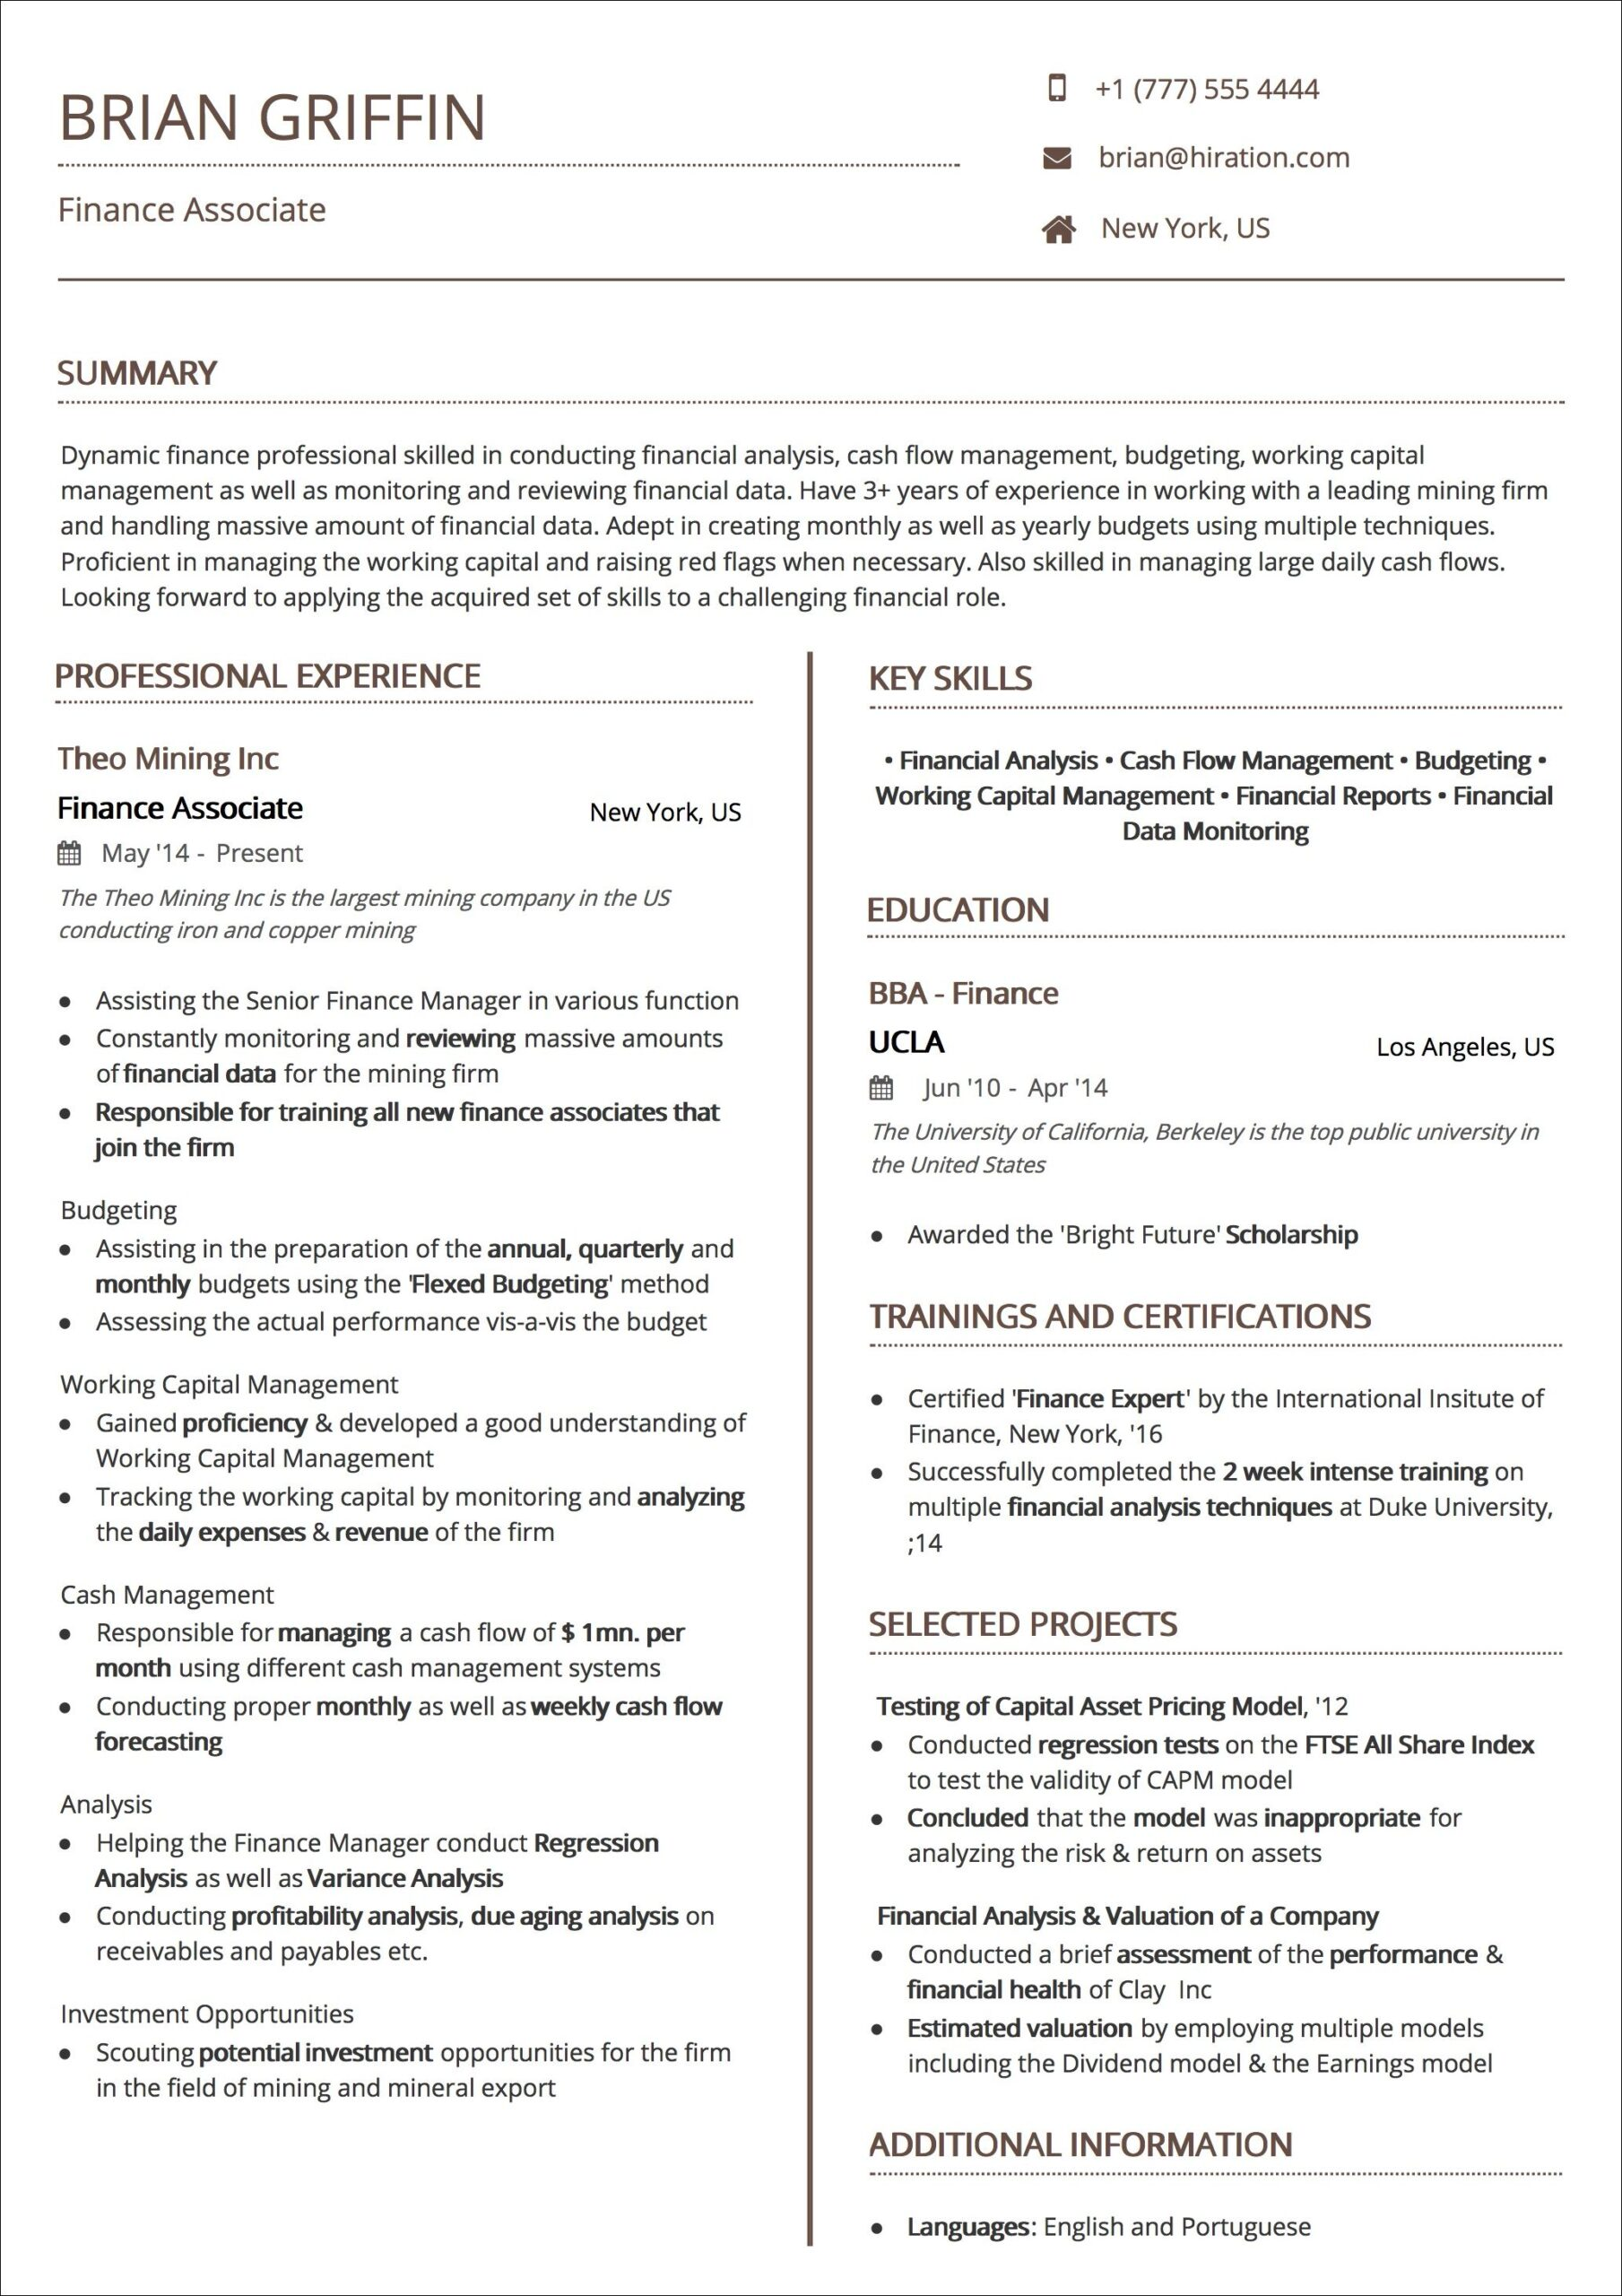 resume templates the guide to choosing best template simple two column uniform acting Resume Simple Two Column Resume Template